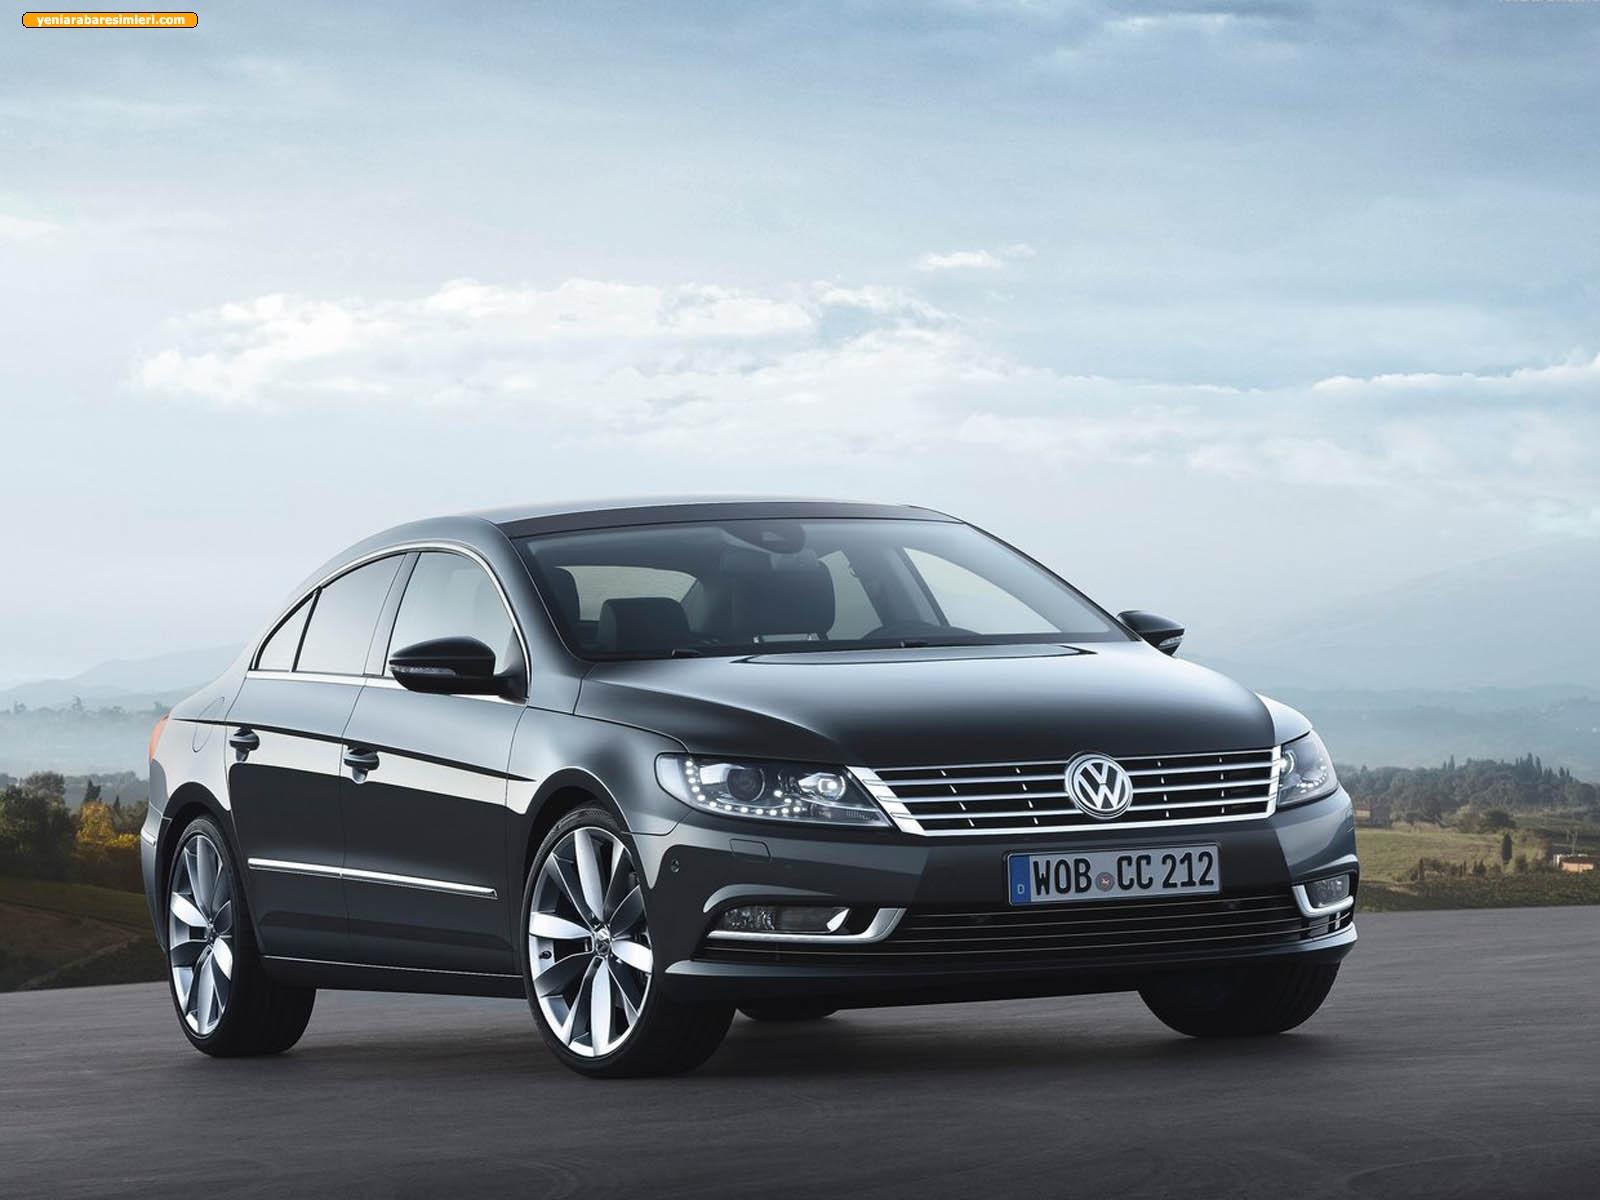 2015 volkswagen touareg cc 1080p wallpapers. Black Bedroom Furniture Sets. Home Design Ideas